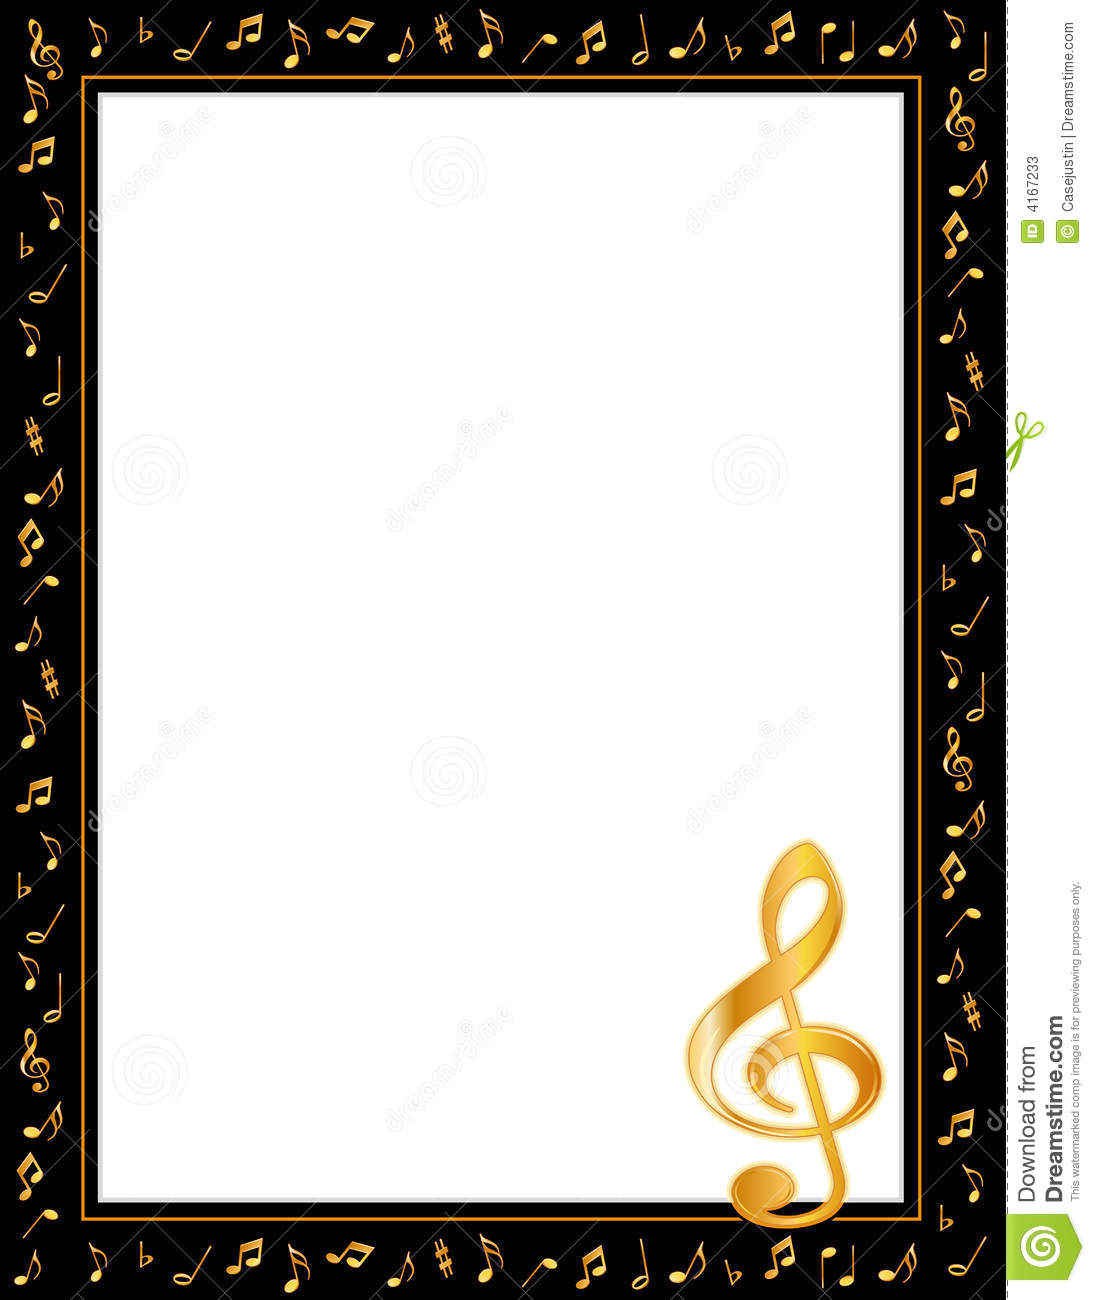 christmas music notes border music notes poster frame - Music Picture Frame